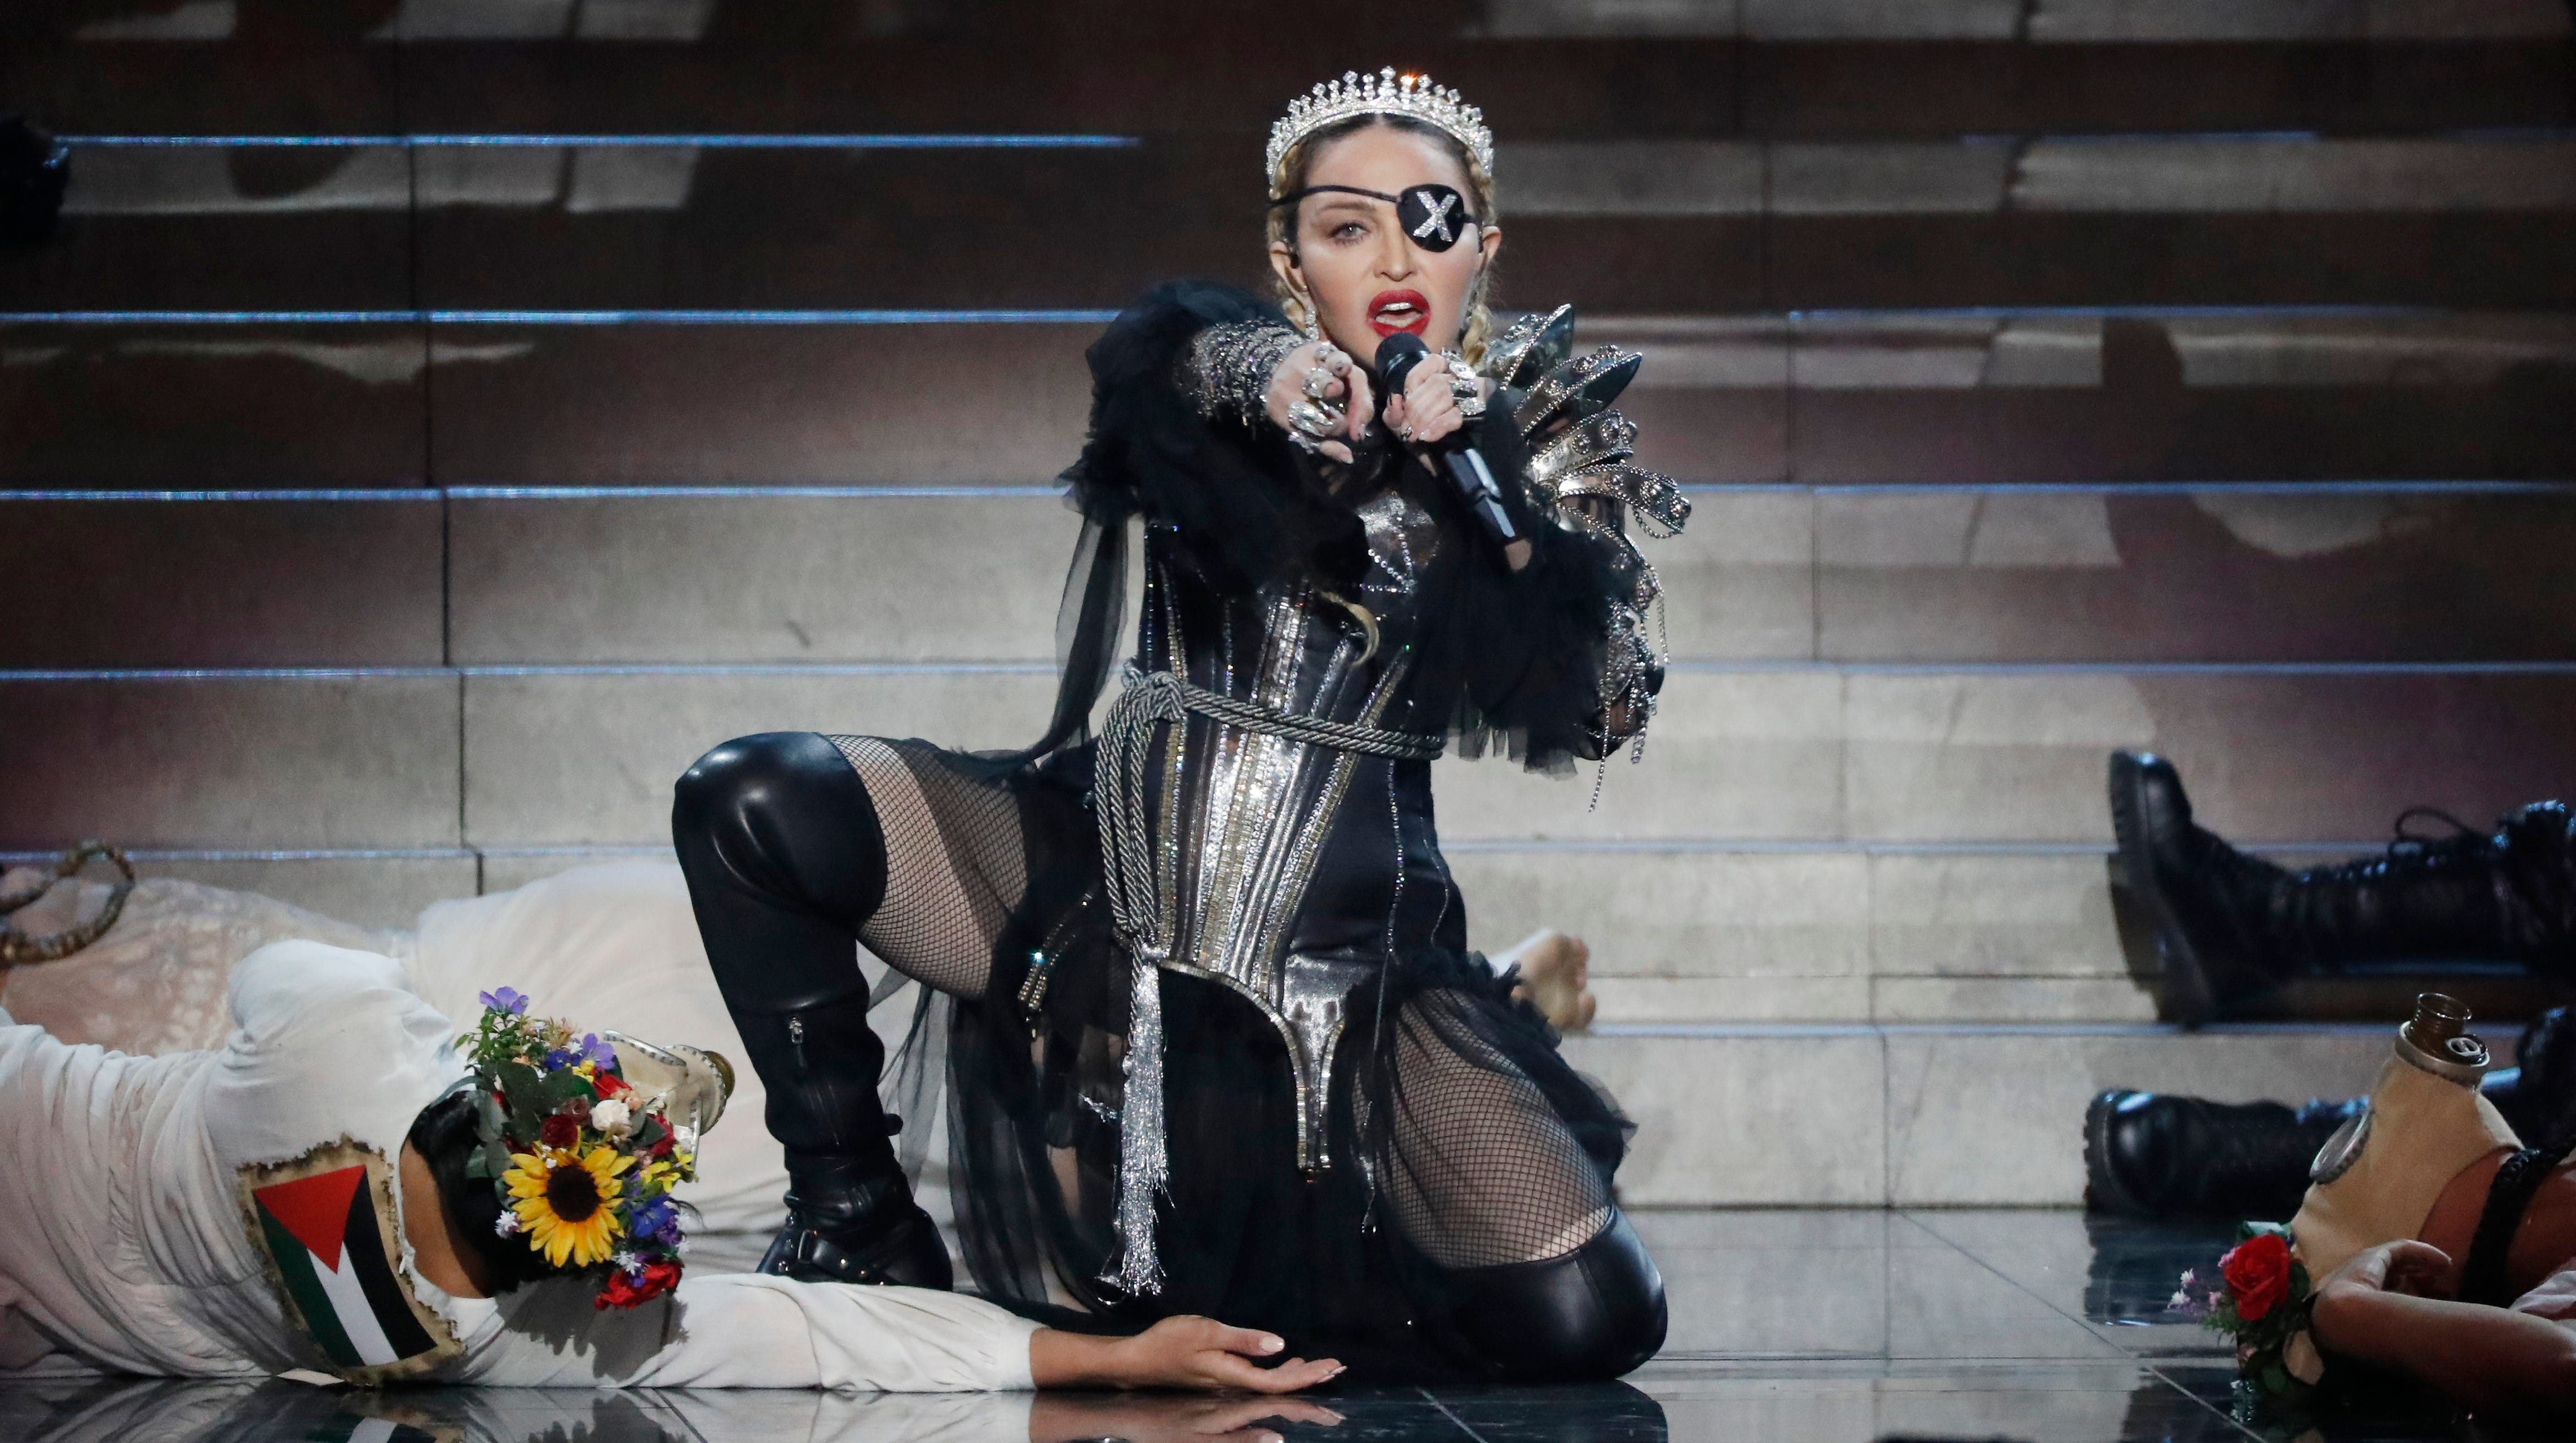 Madonna sparks controversy at 'non-political' Eurovision with her flag display - USA TODAY